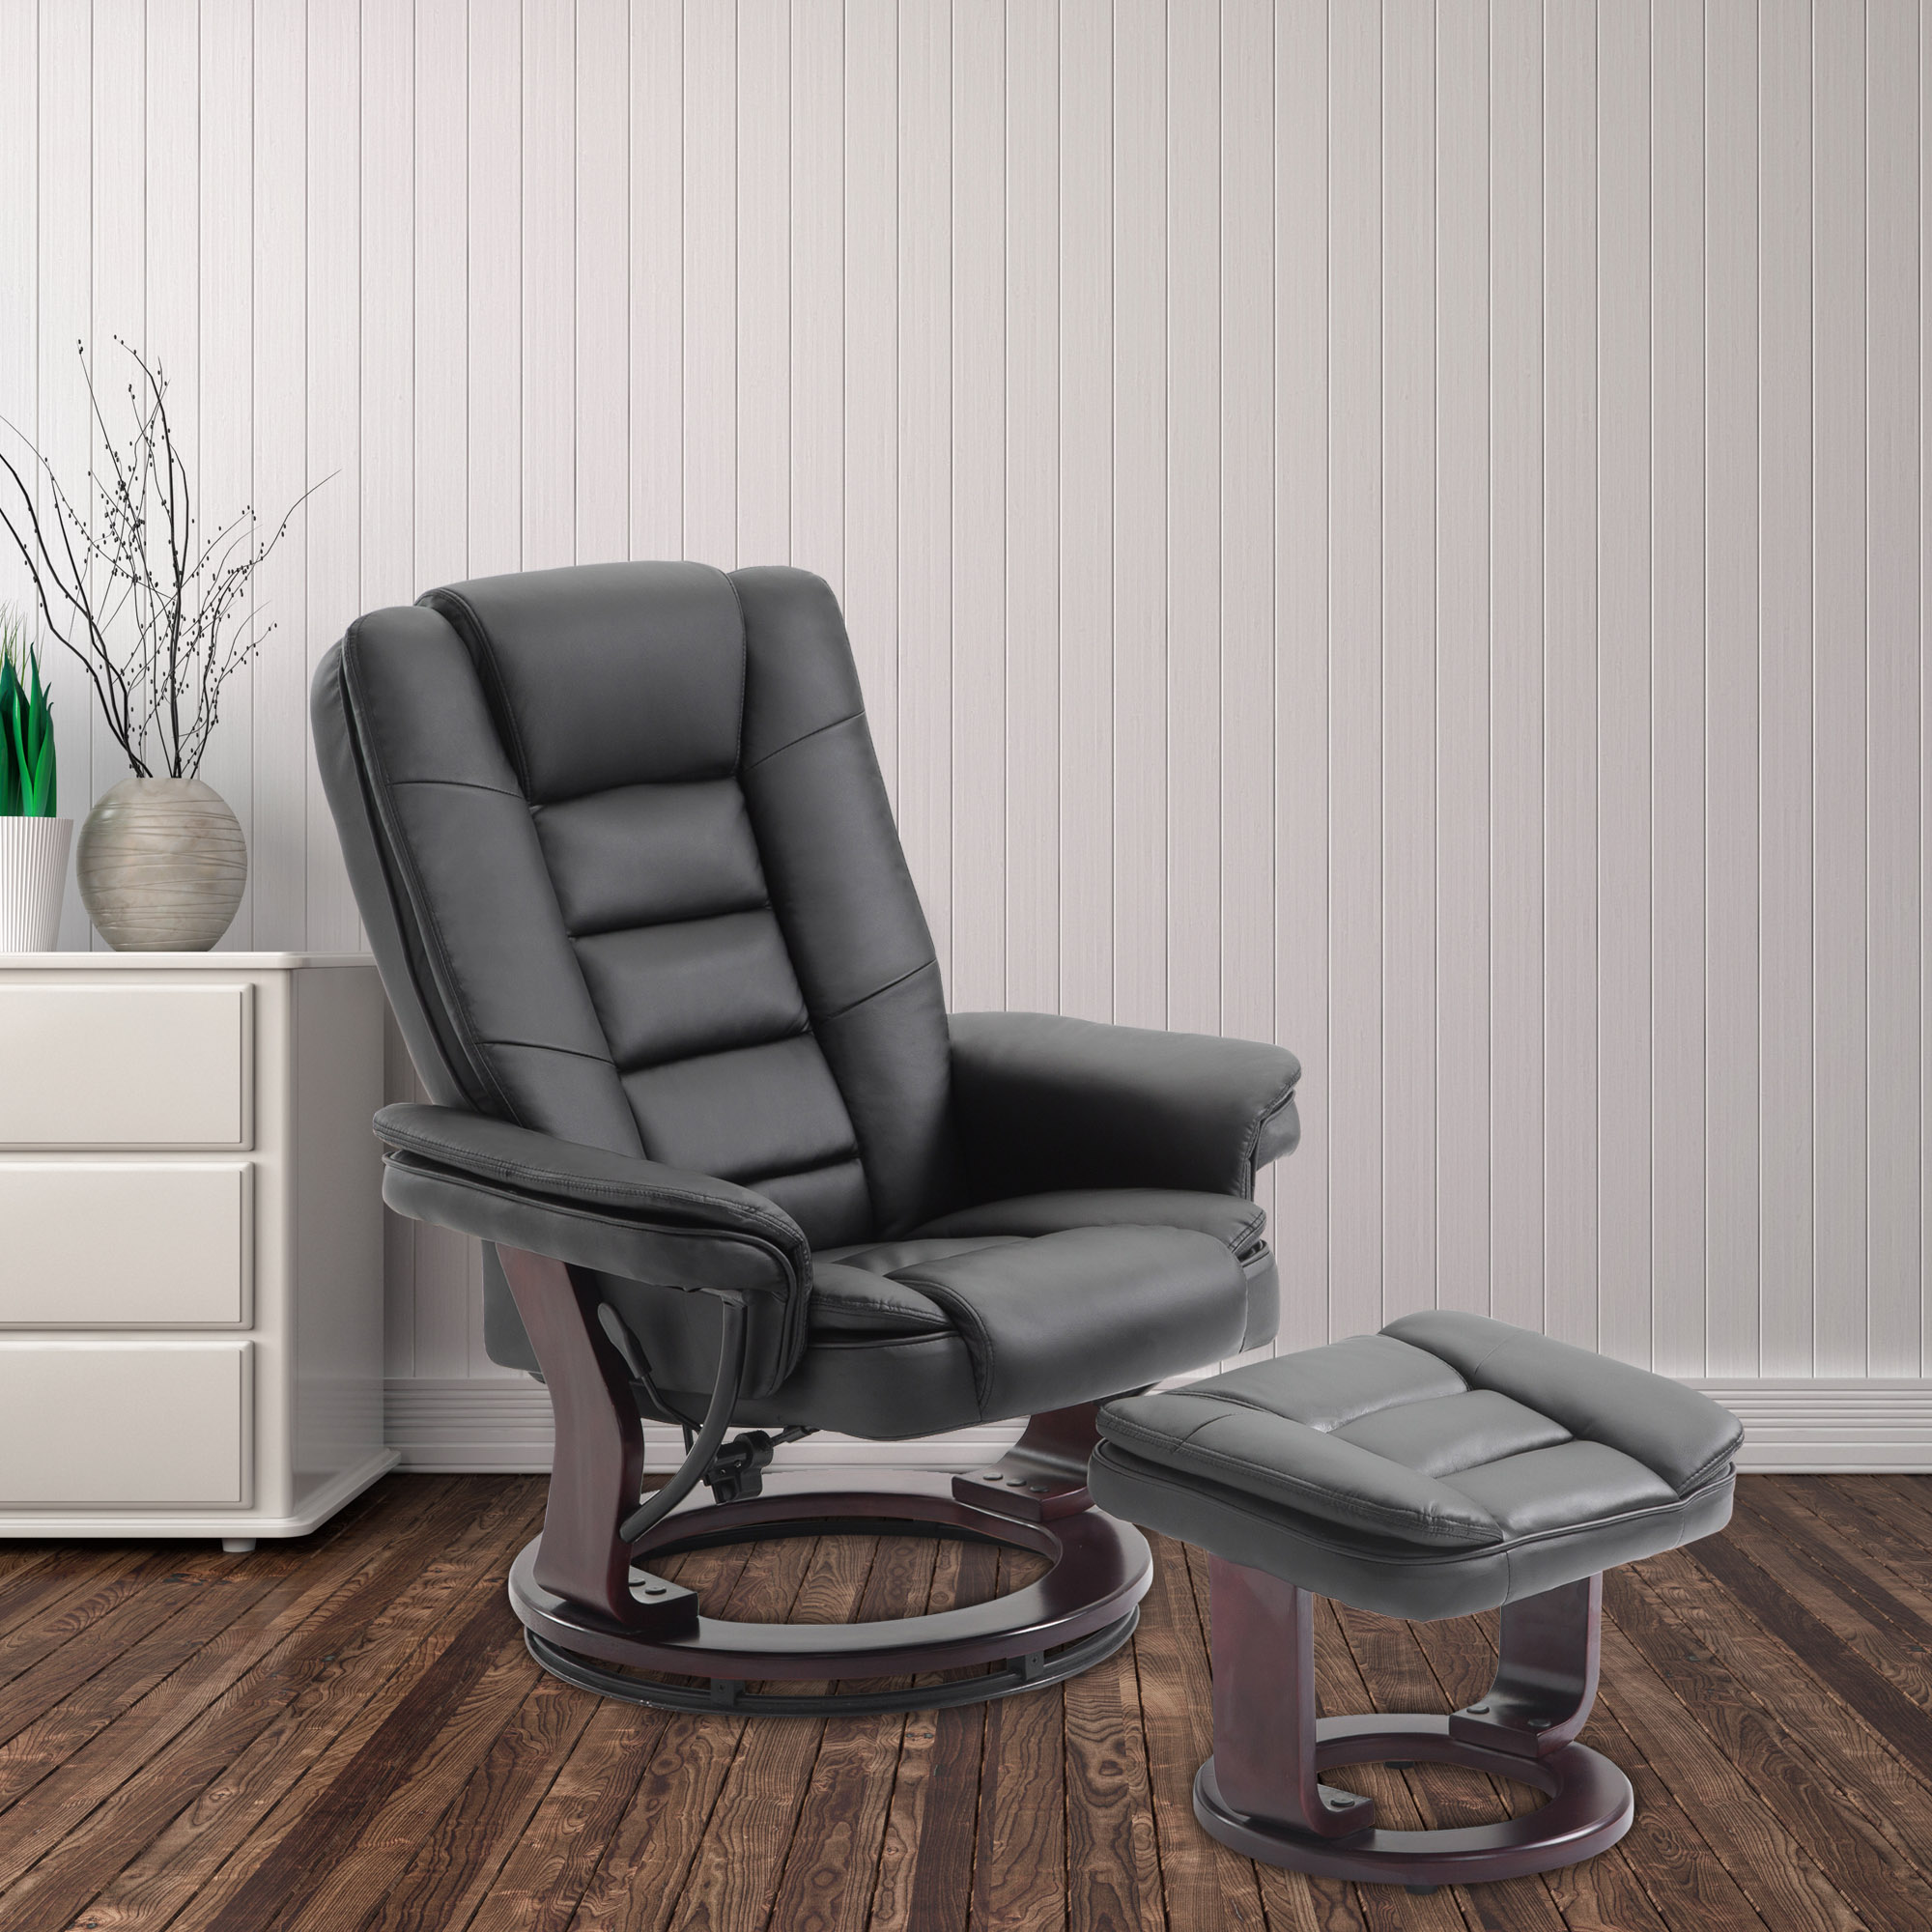 Cloud Mountain PU Leather Recliner Chair And Ottoman Swivel Lounge Leisure Living  Room Furniture Set,